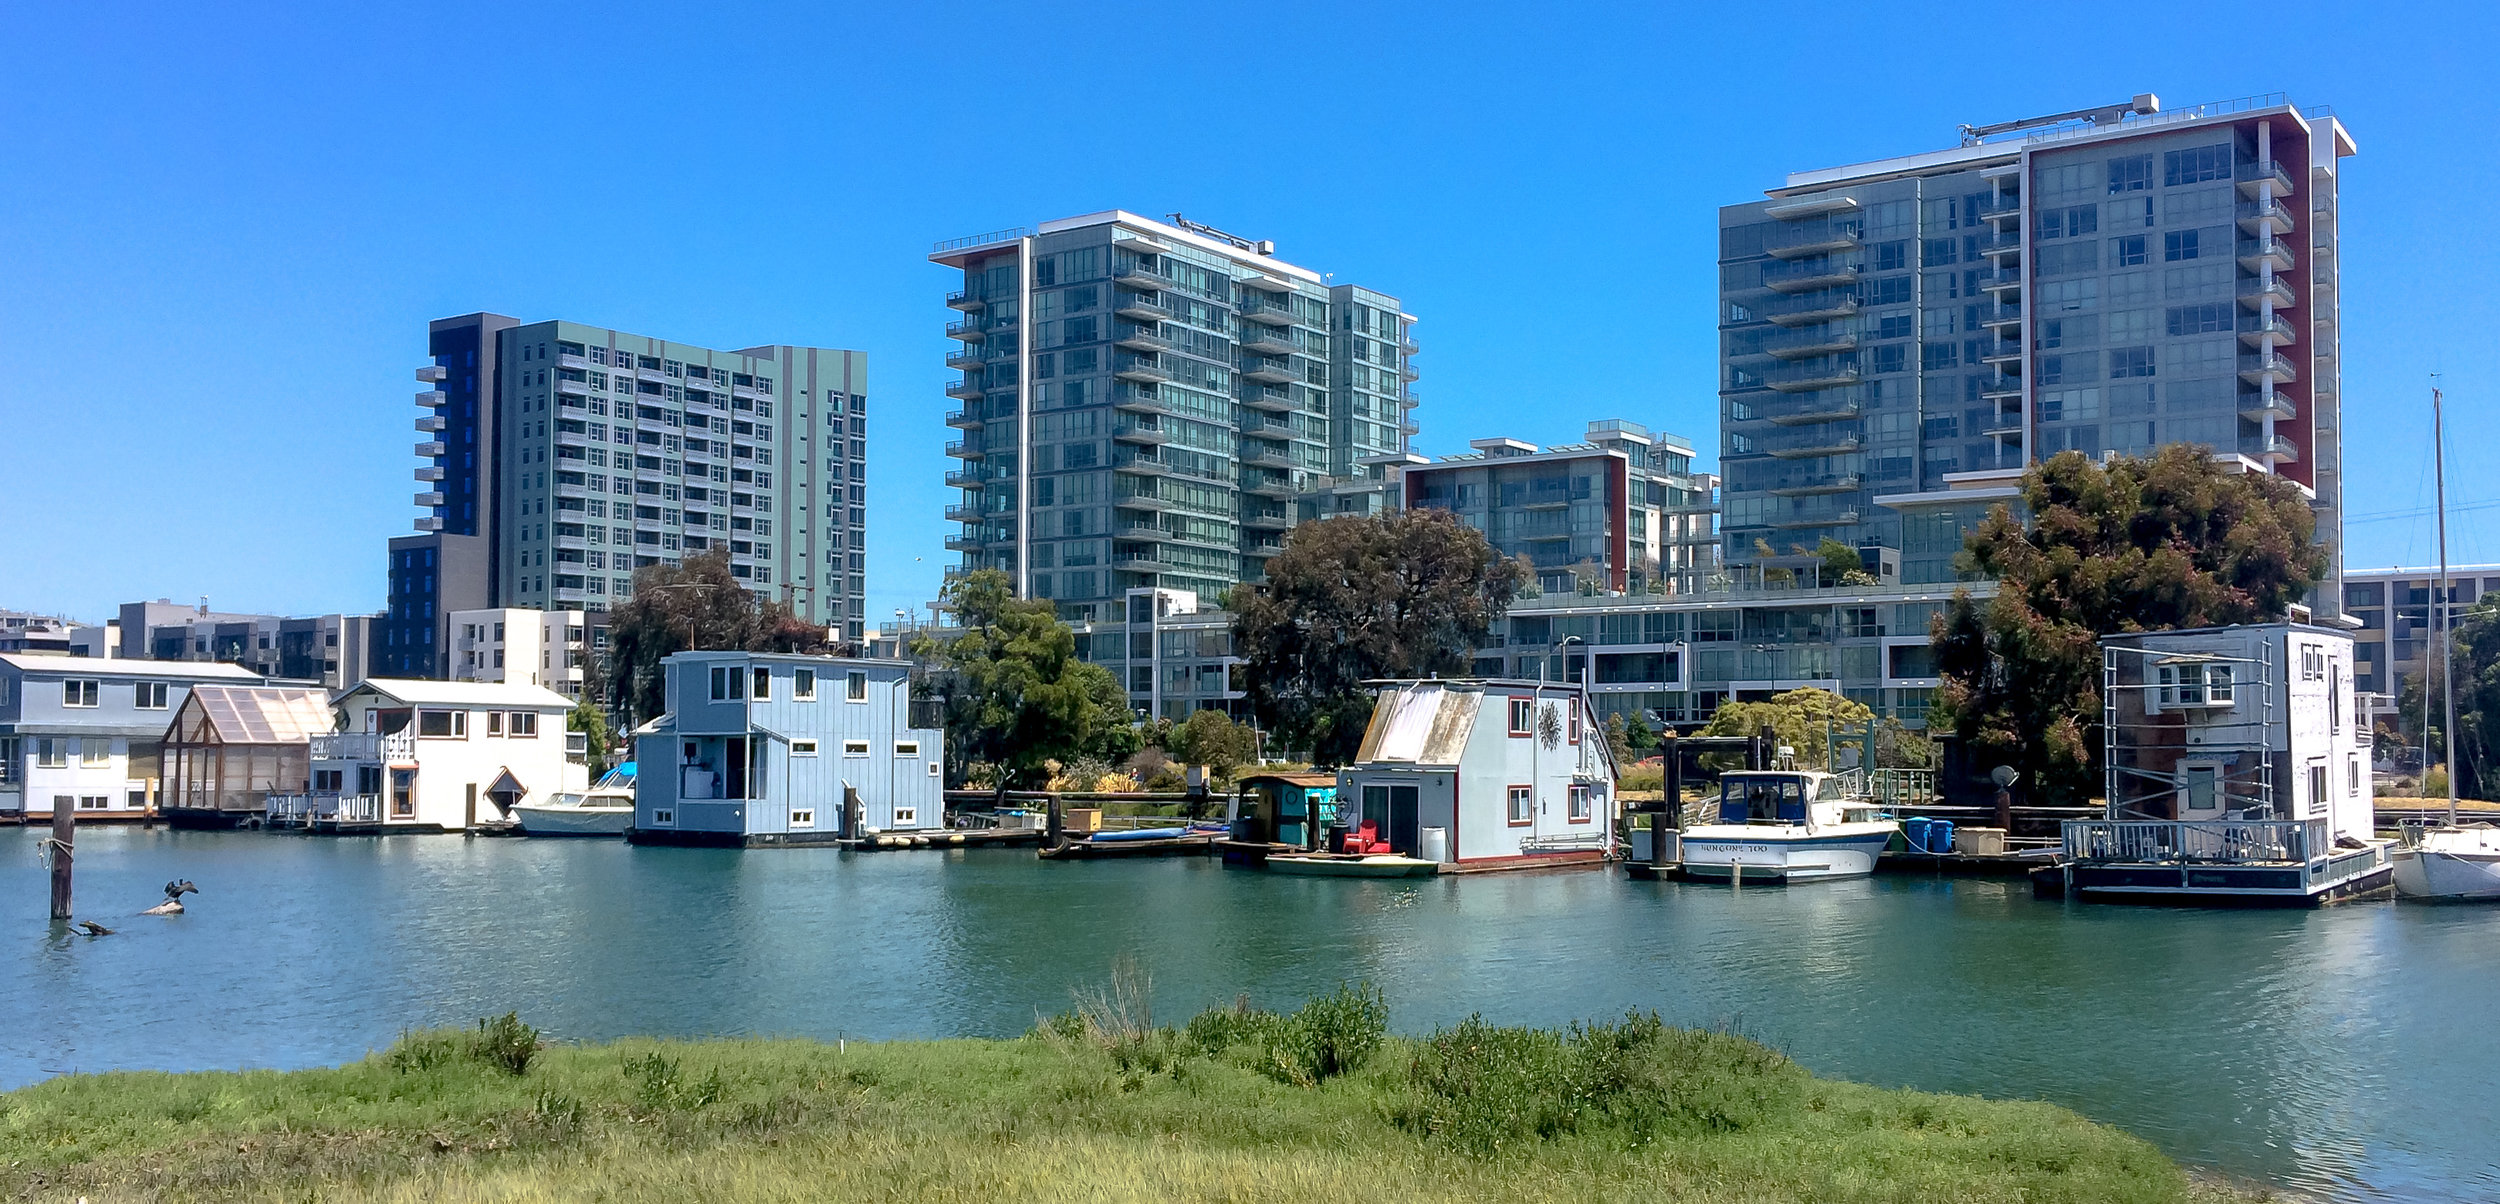 There are still a few houseboats in San Francisco, adjacent to new apartment buildings.